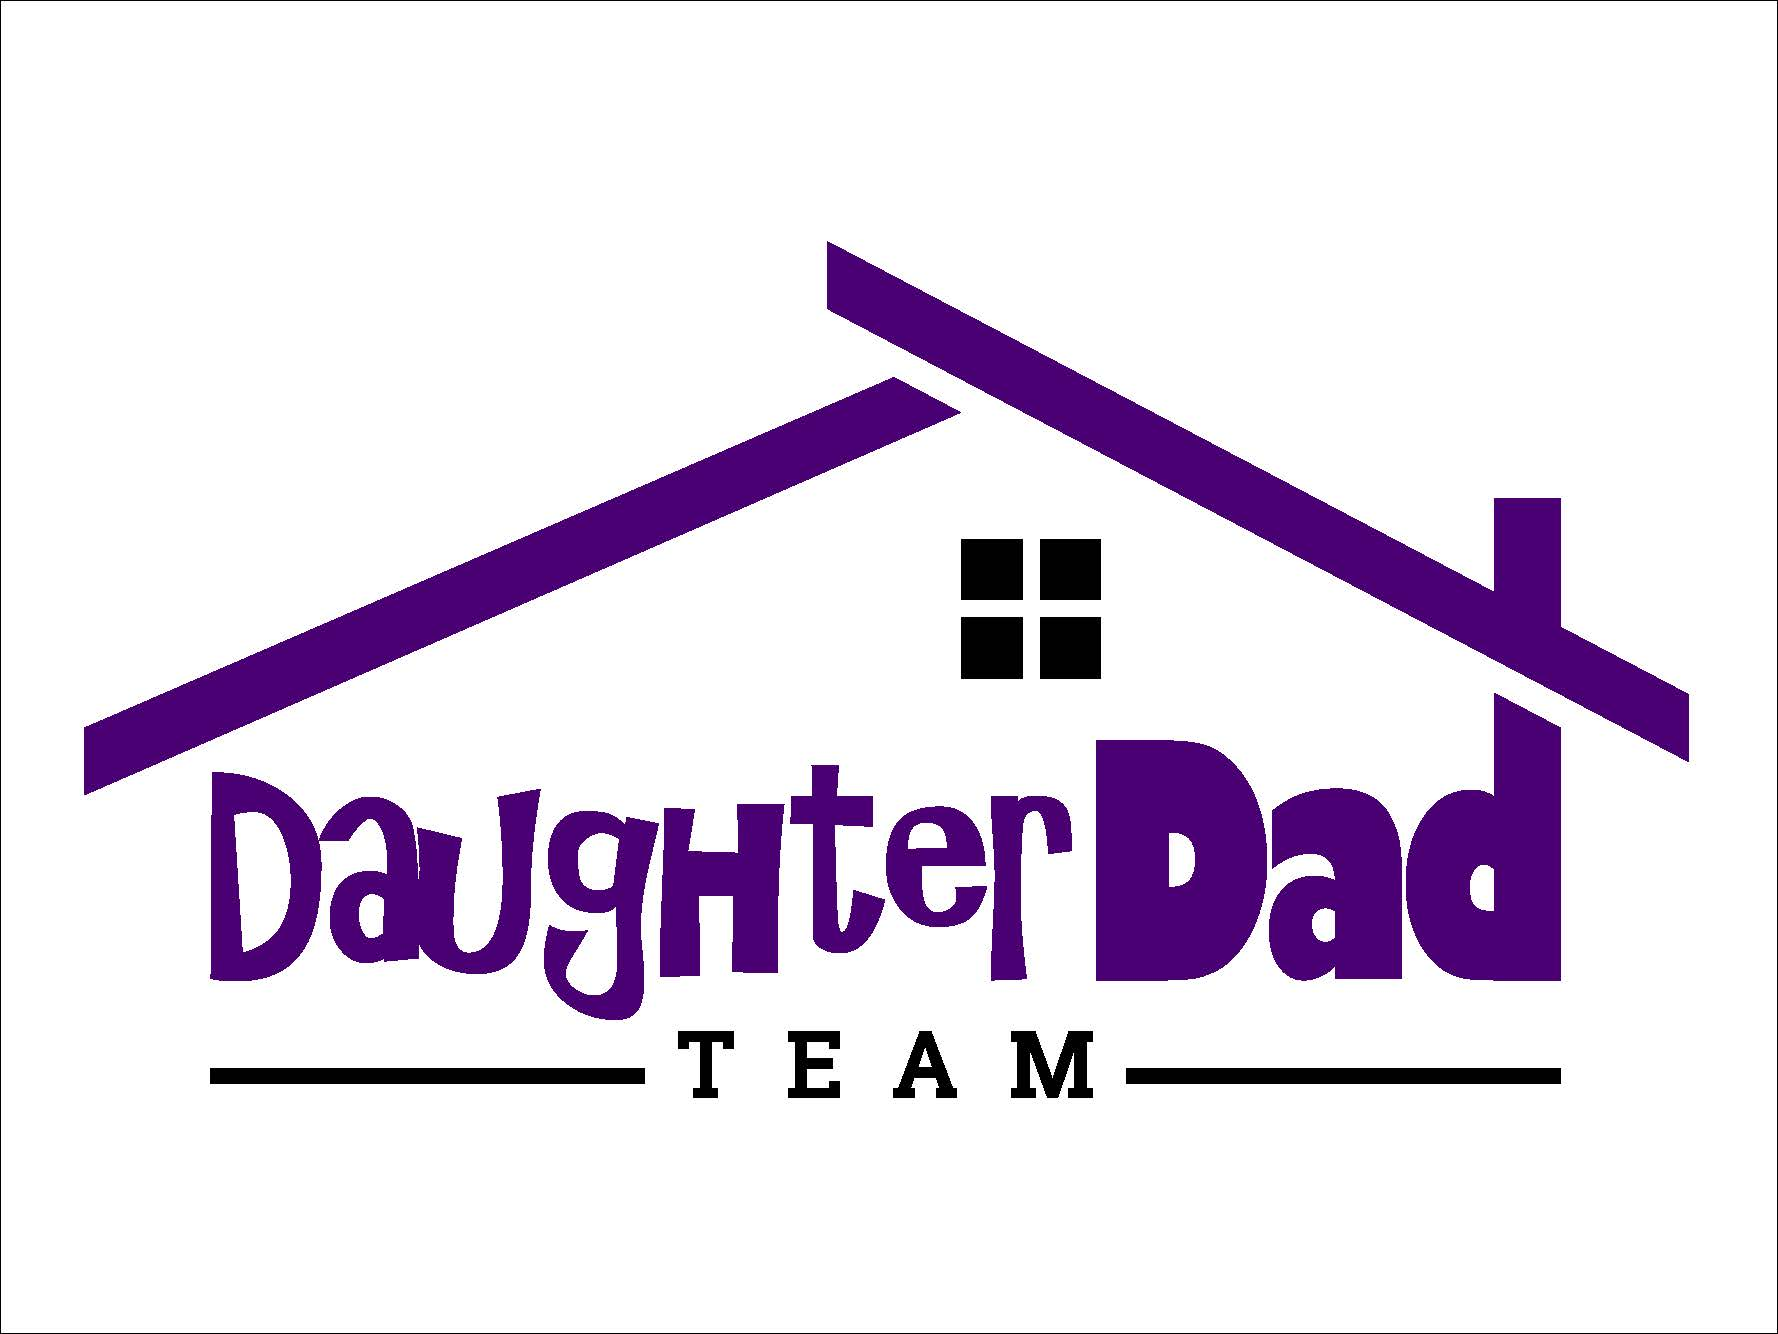 DaughterDad Team [Converted]